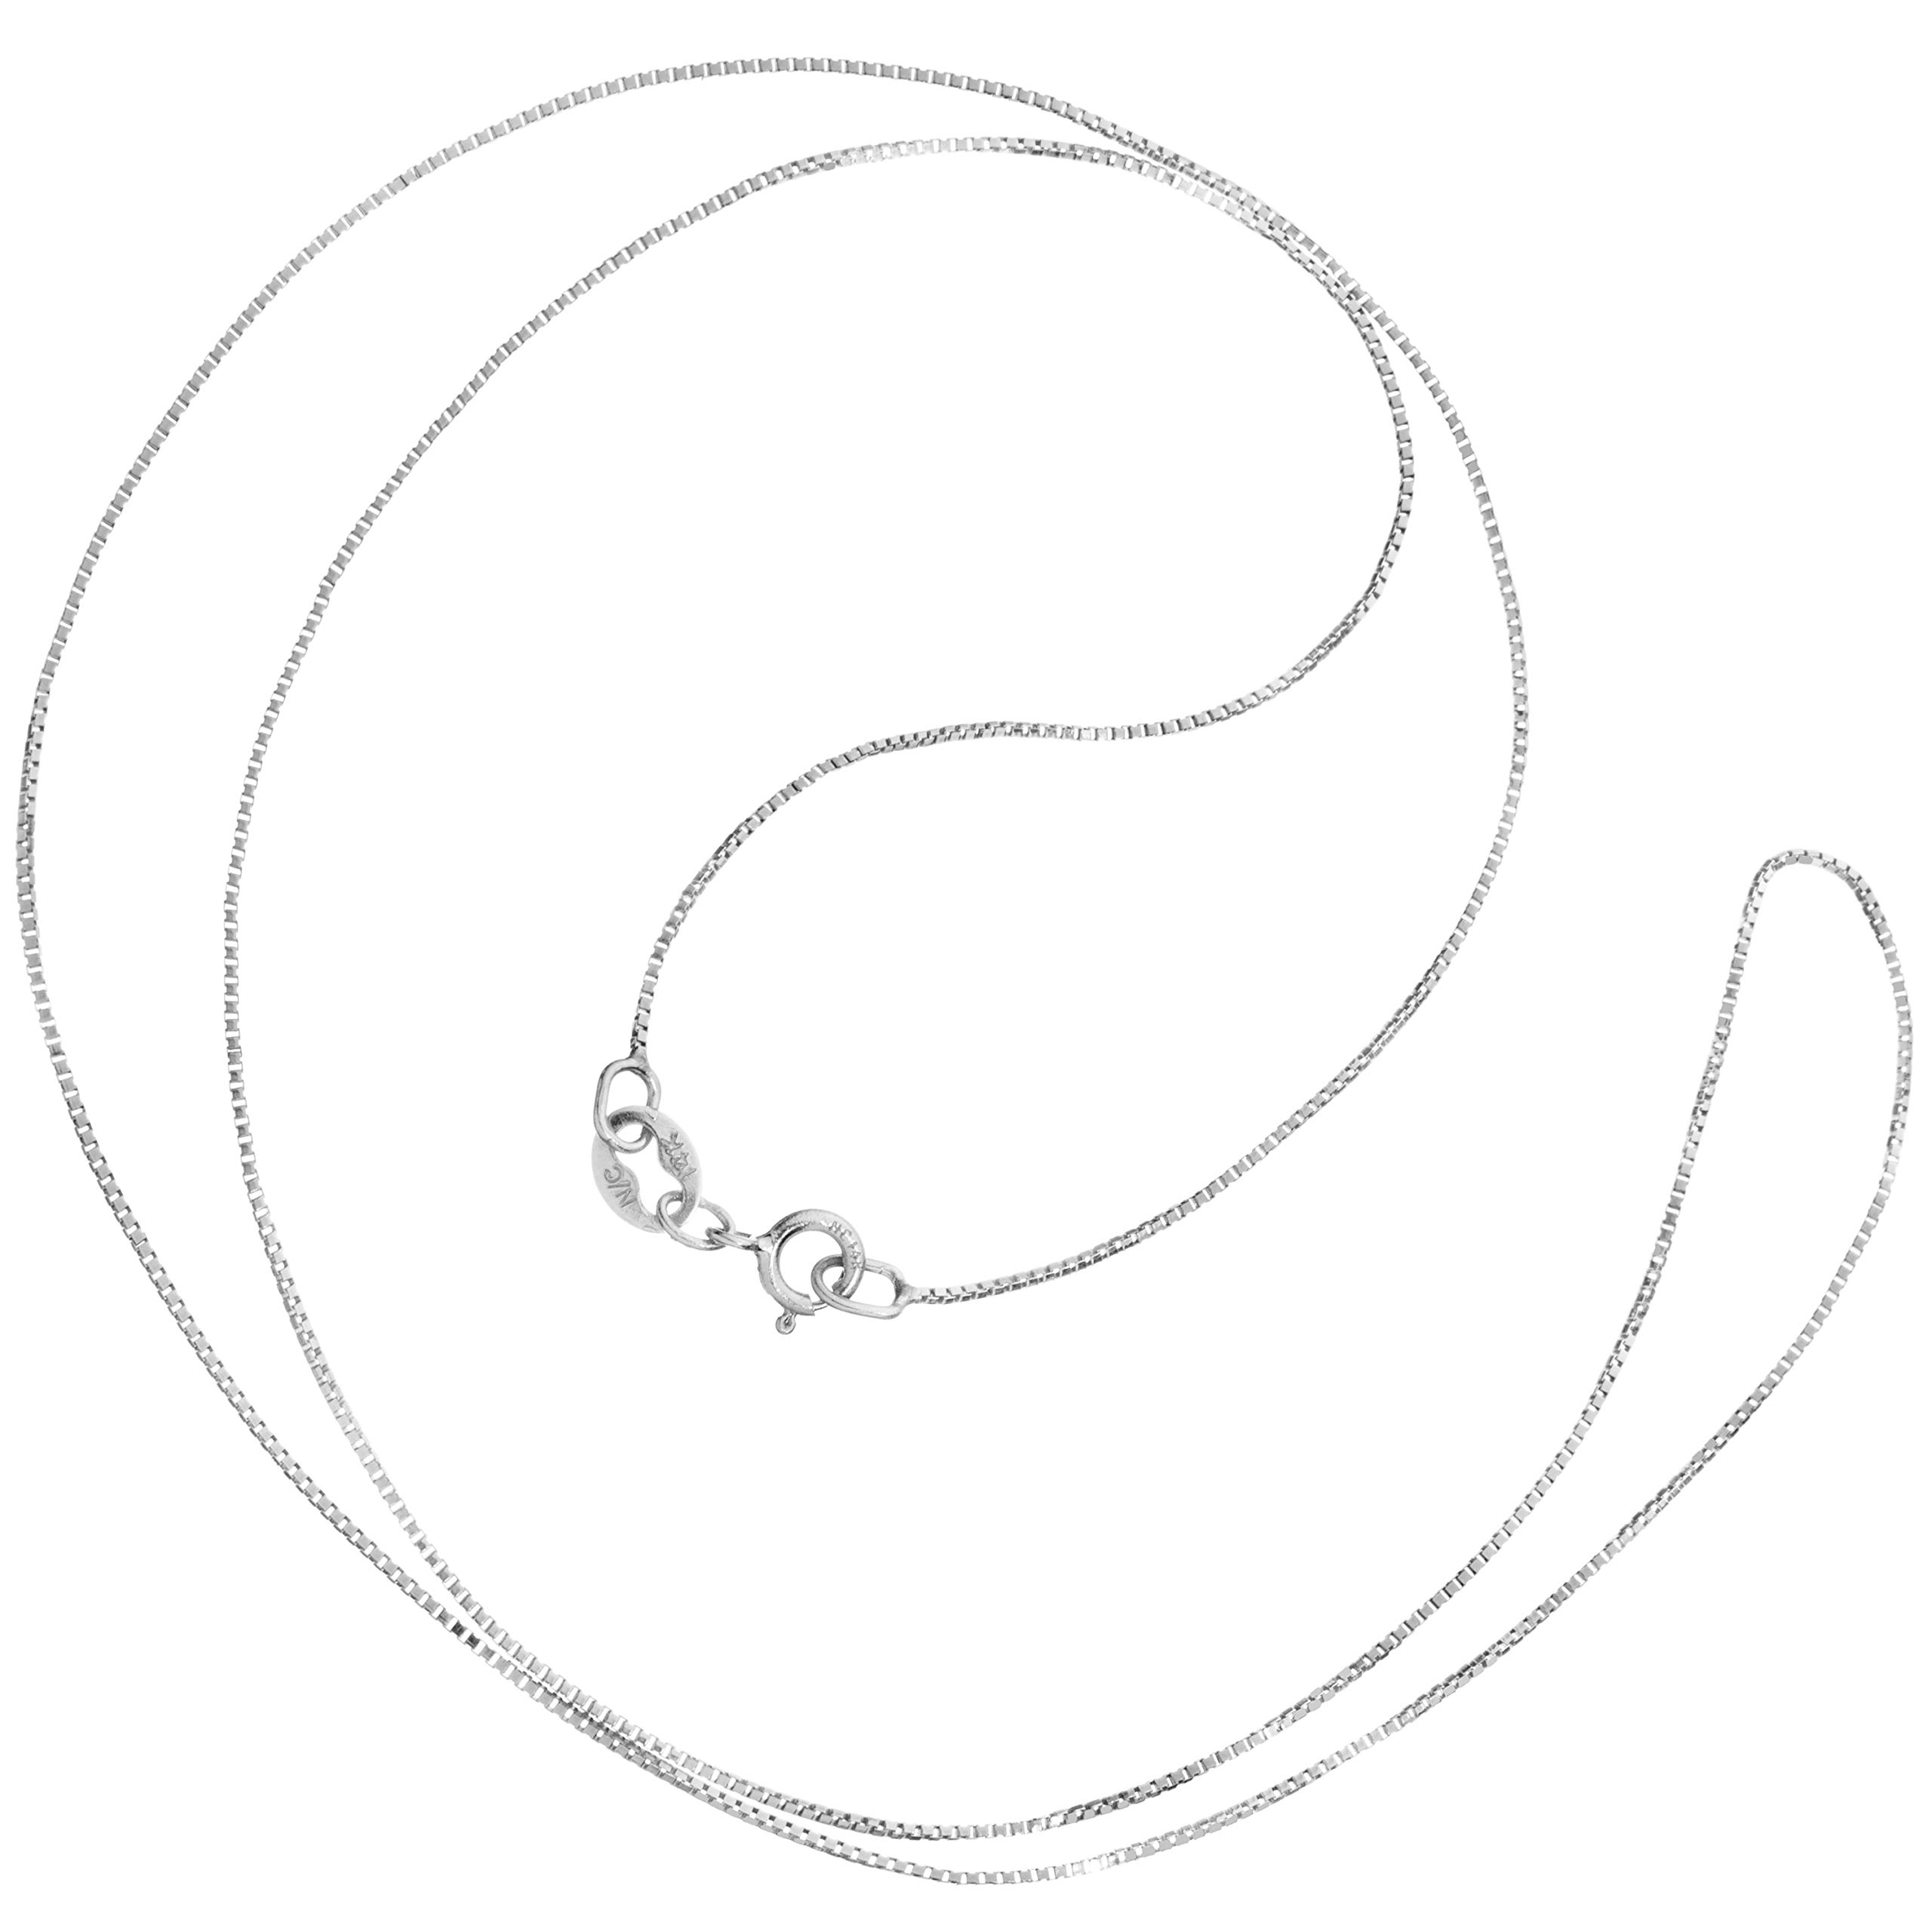 14K Solid White Gold Necklace | Box Link Chain | 18 Inch Length | .60mm Thick | With Gift Box